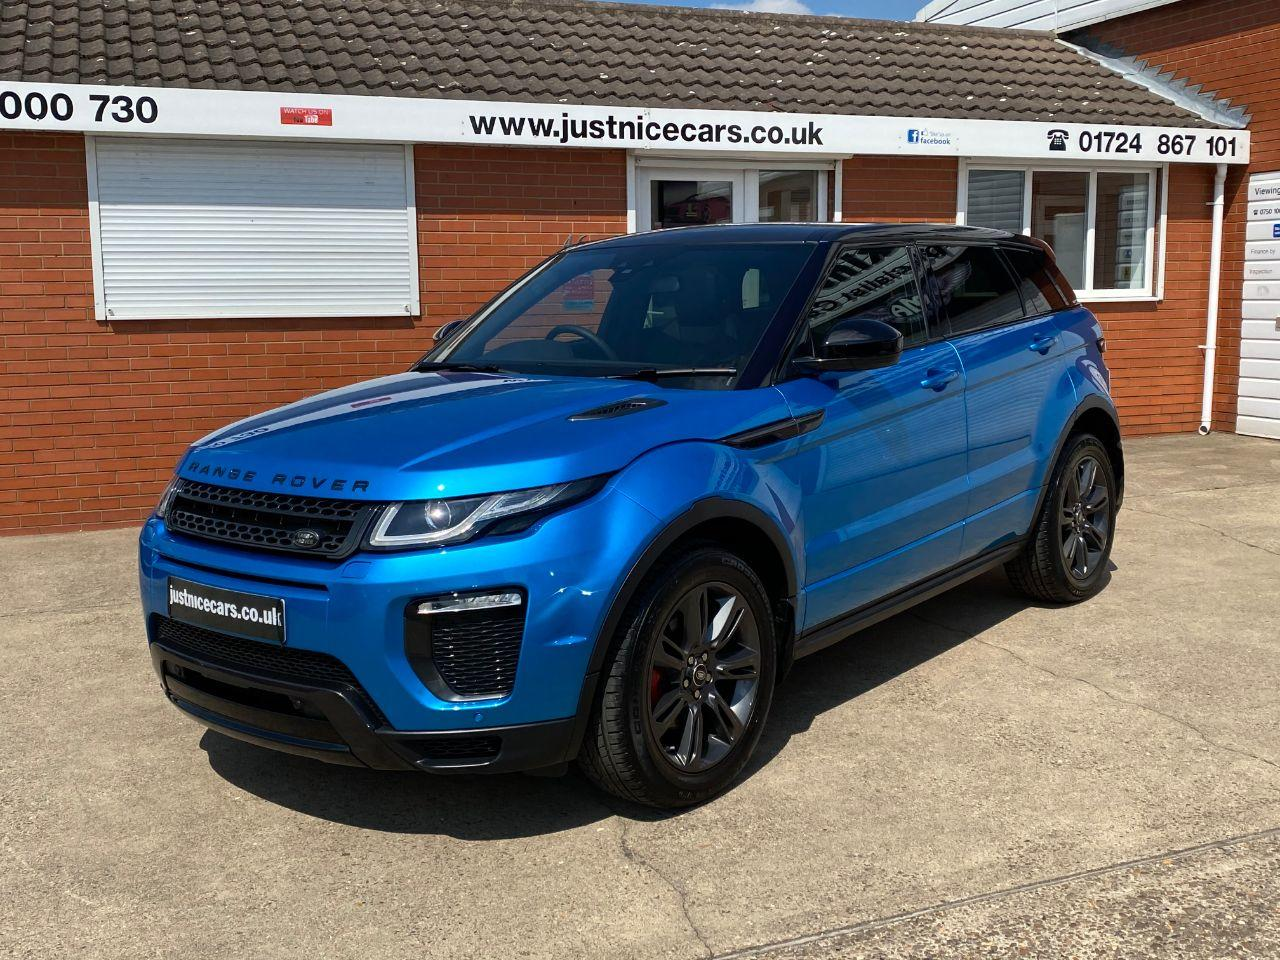 Land Rover Range Rover Evoque 2.0 TD4 Landmark 5dr Automatic 4 wheel Drive Estate Diesel Moraine Blue